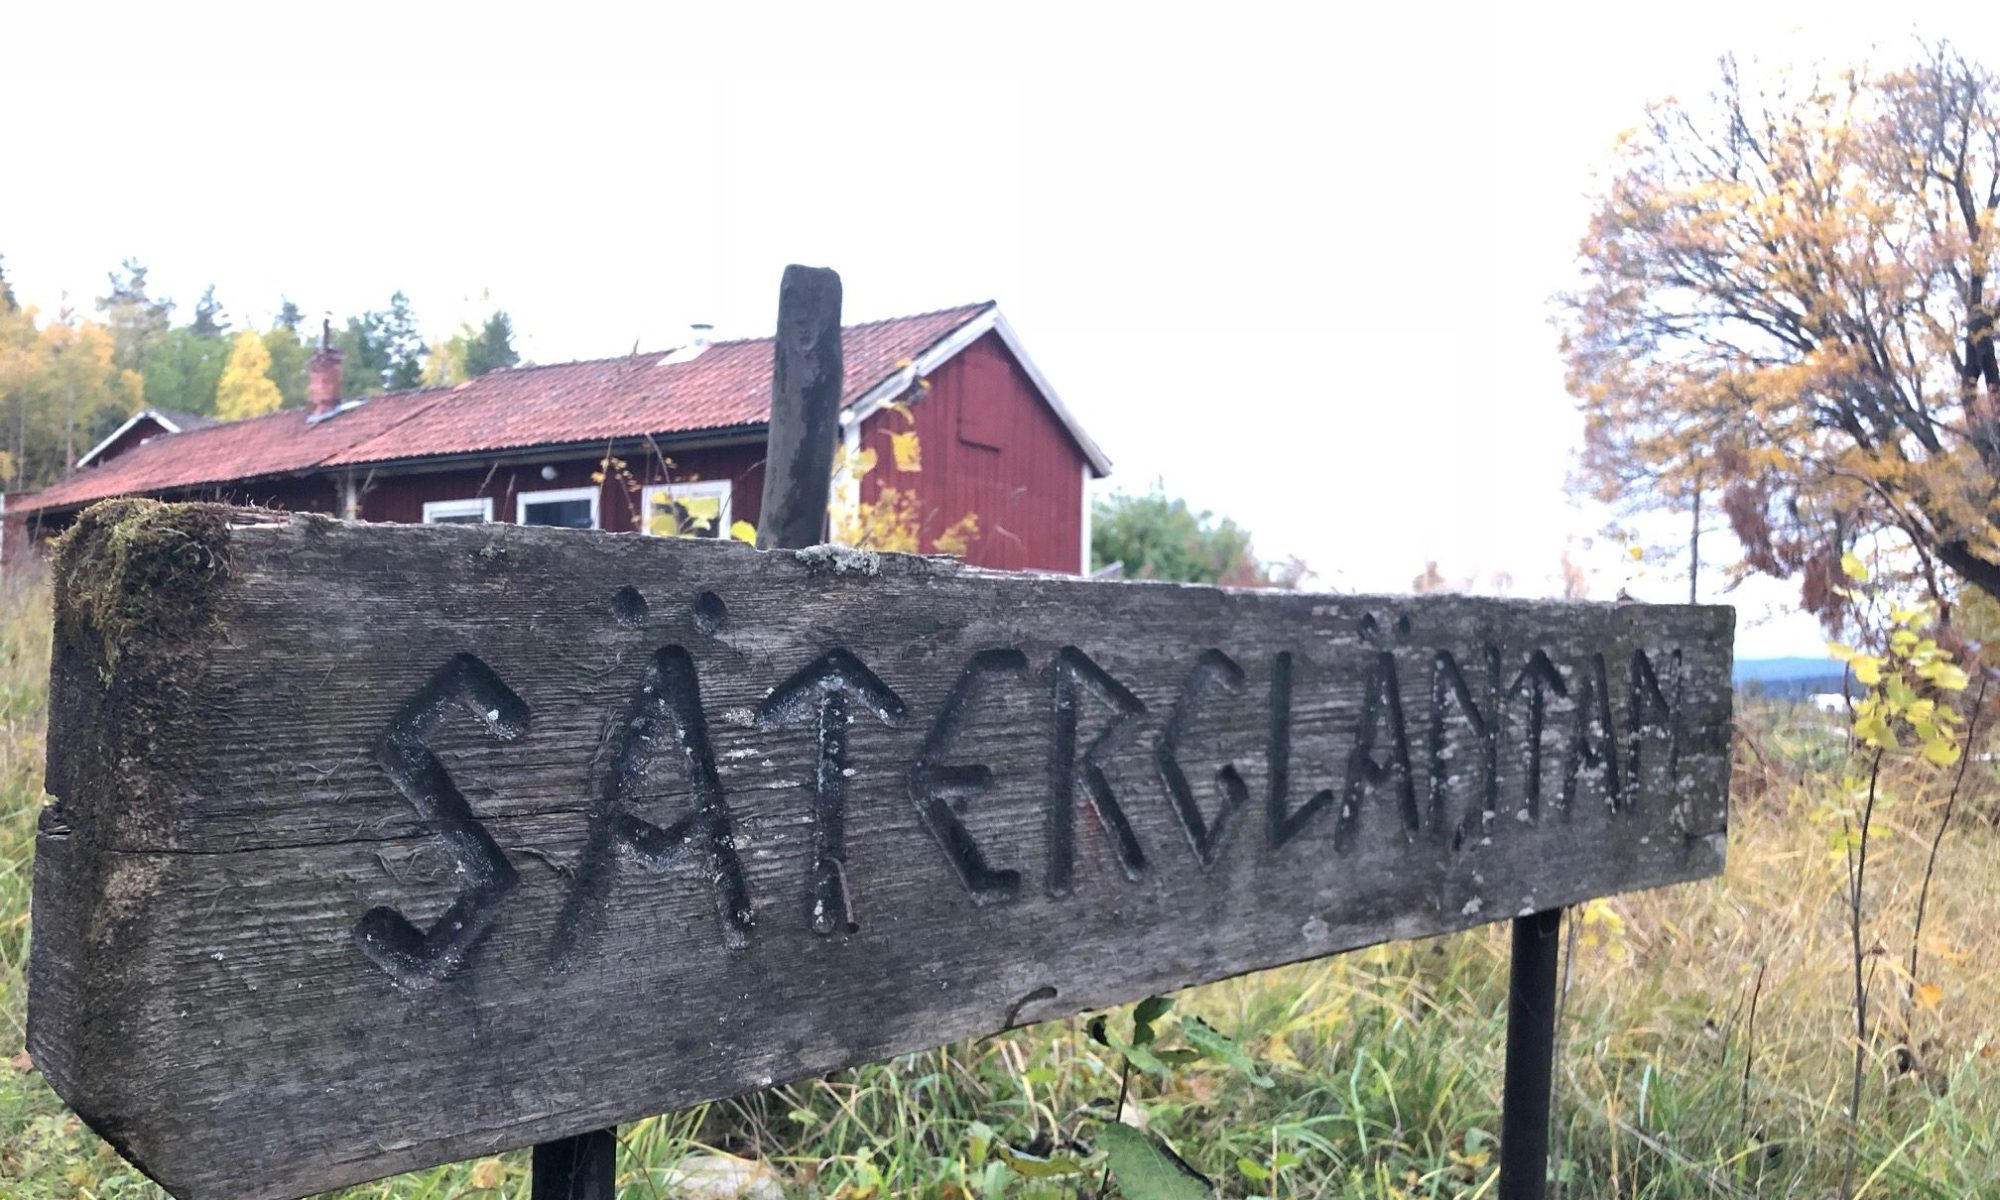 A wooden sign with the text Sätergläntan